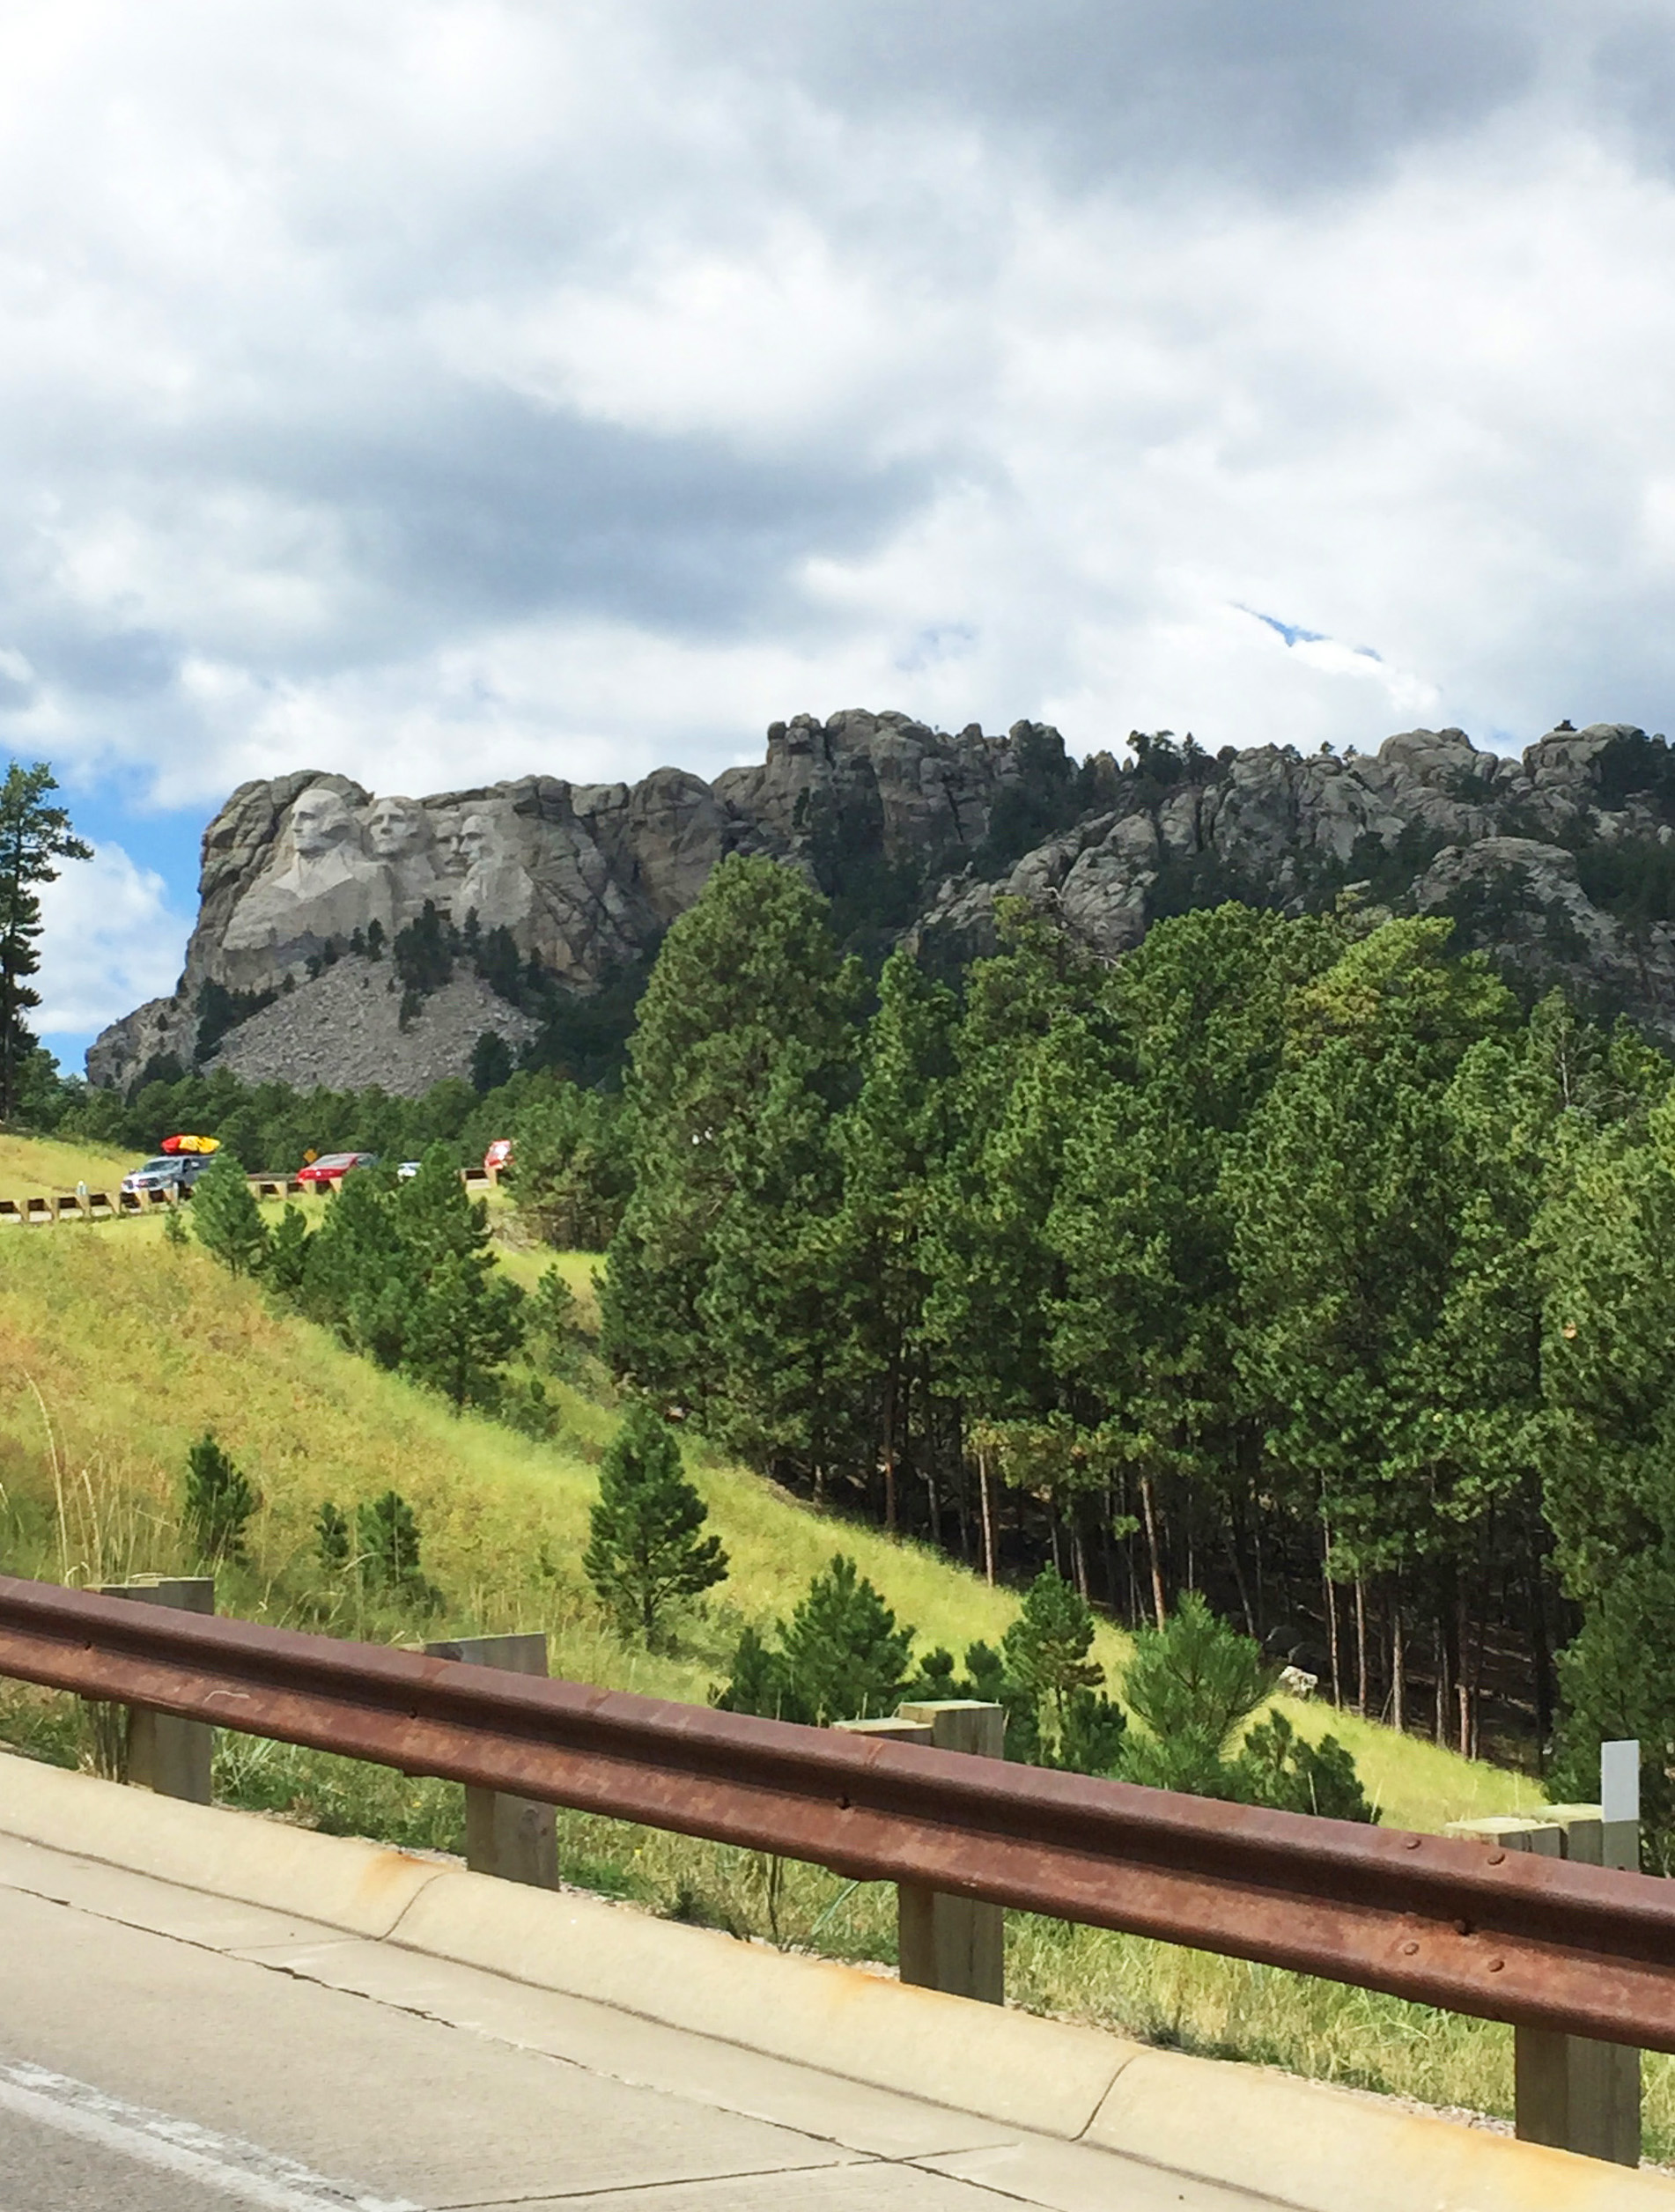 First glimpse of Mt Rushmore from the road.